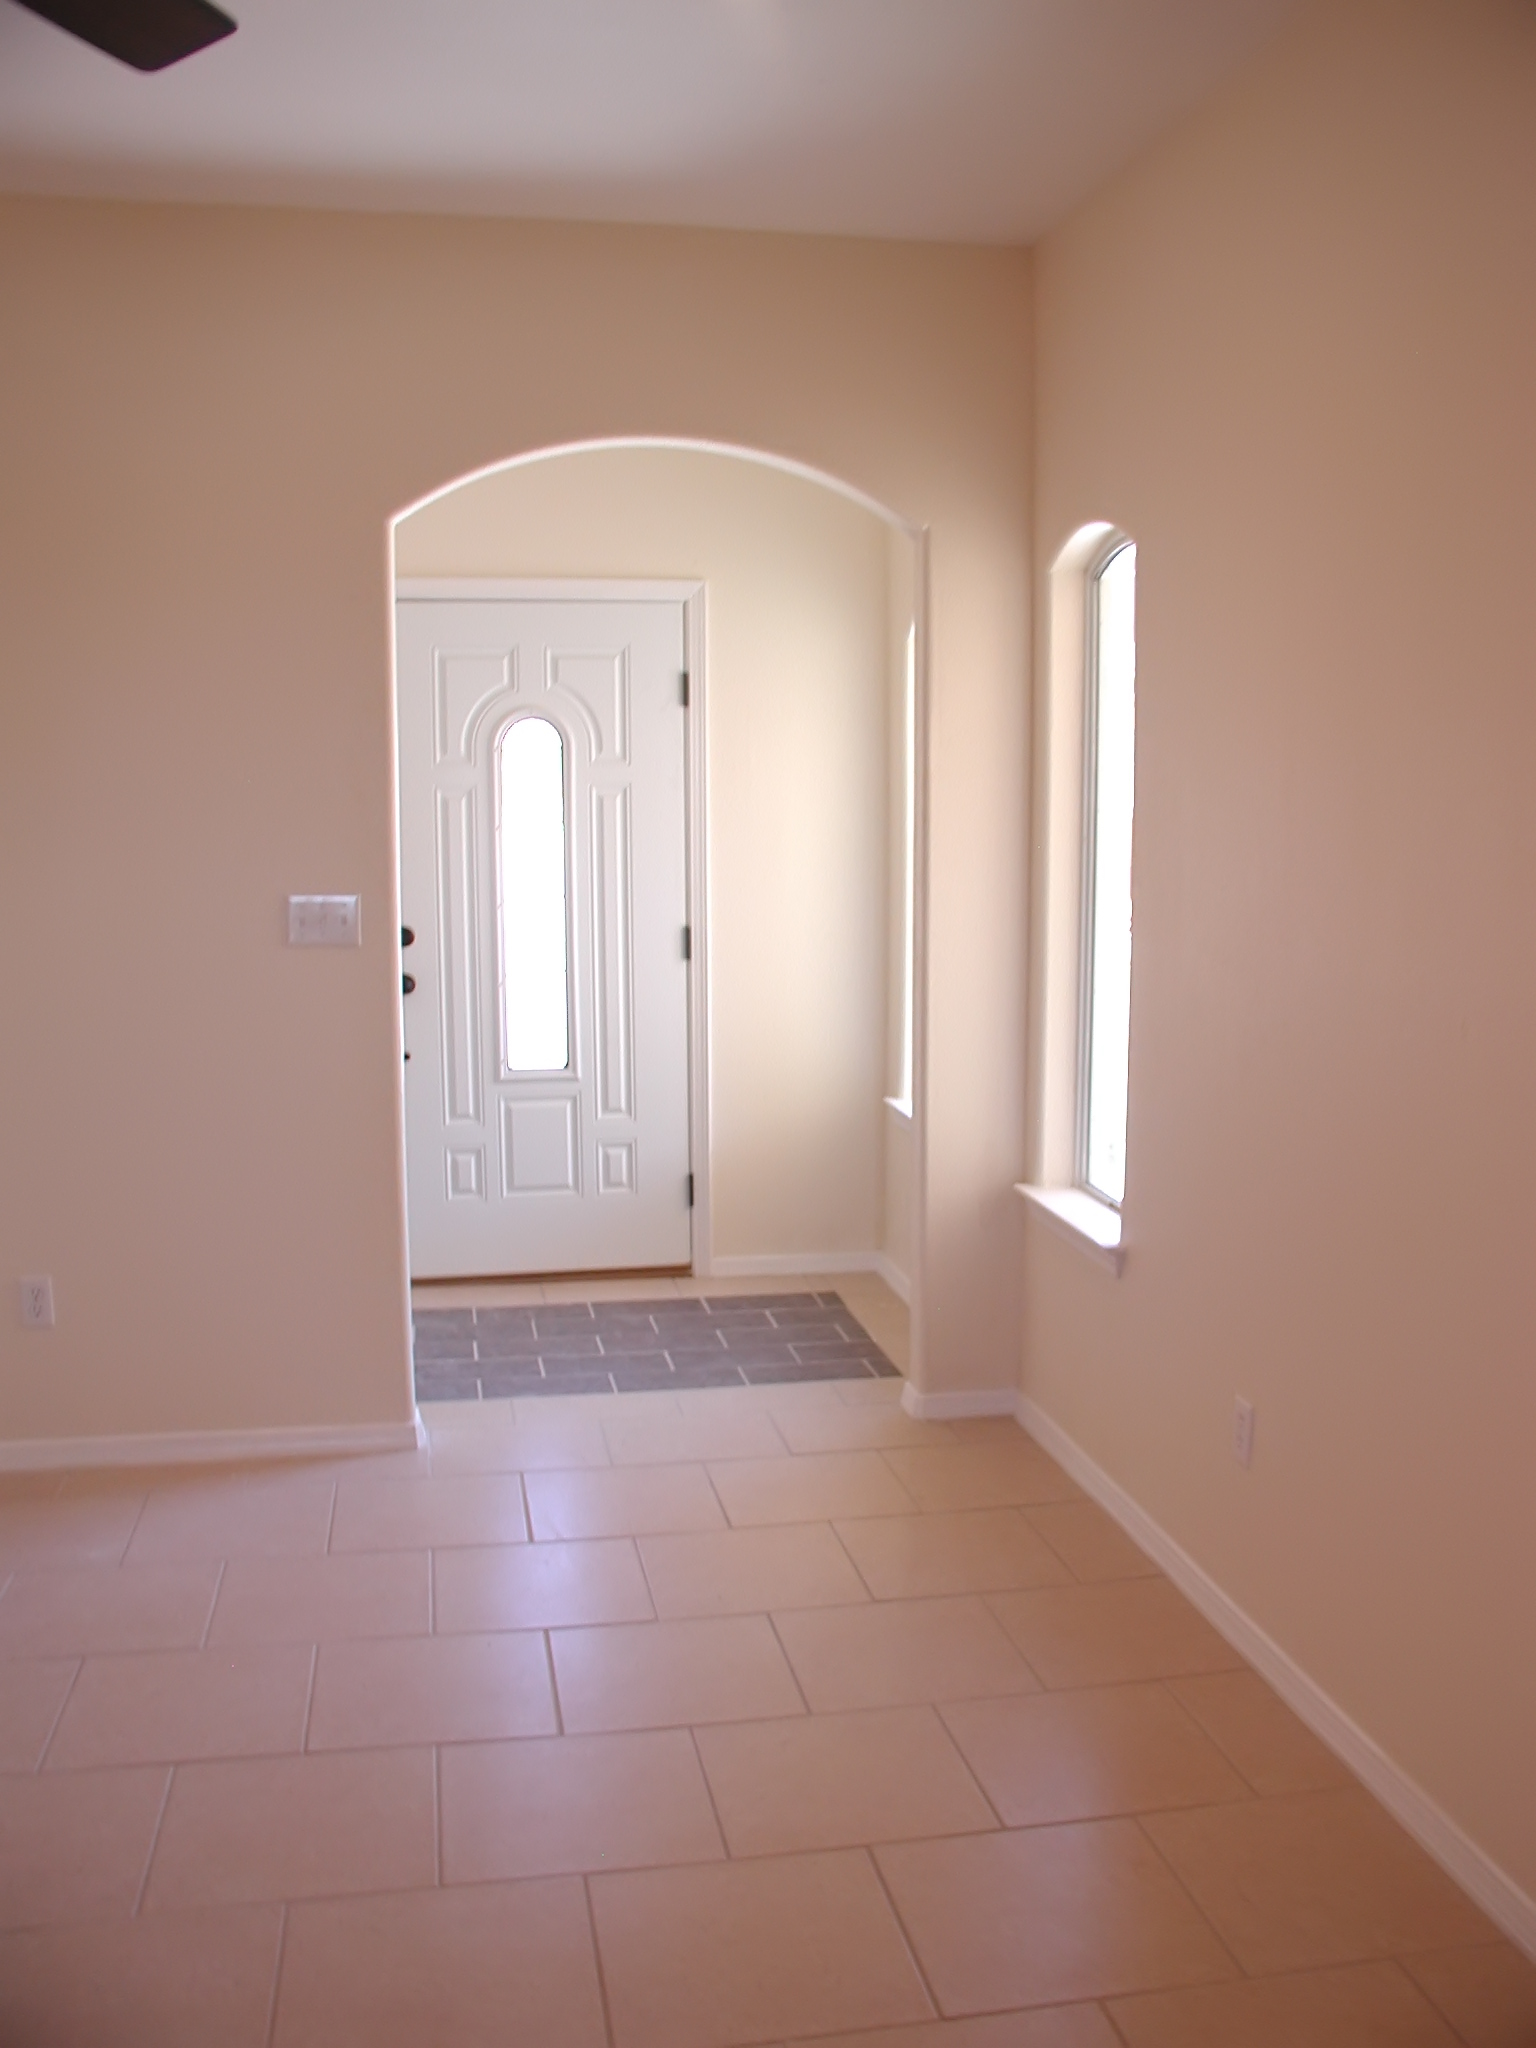 Foyer Office Phone Number : El paso homes for sale real estate casa by owner